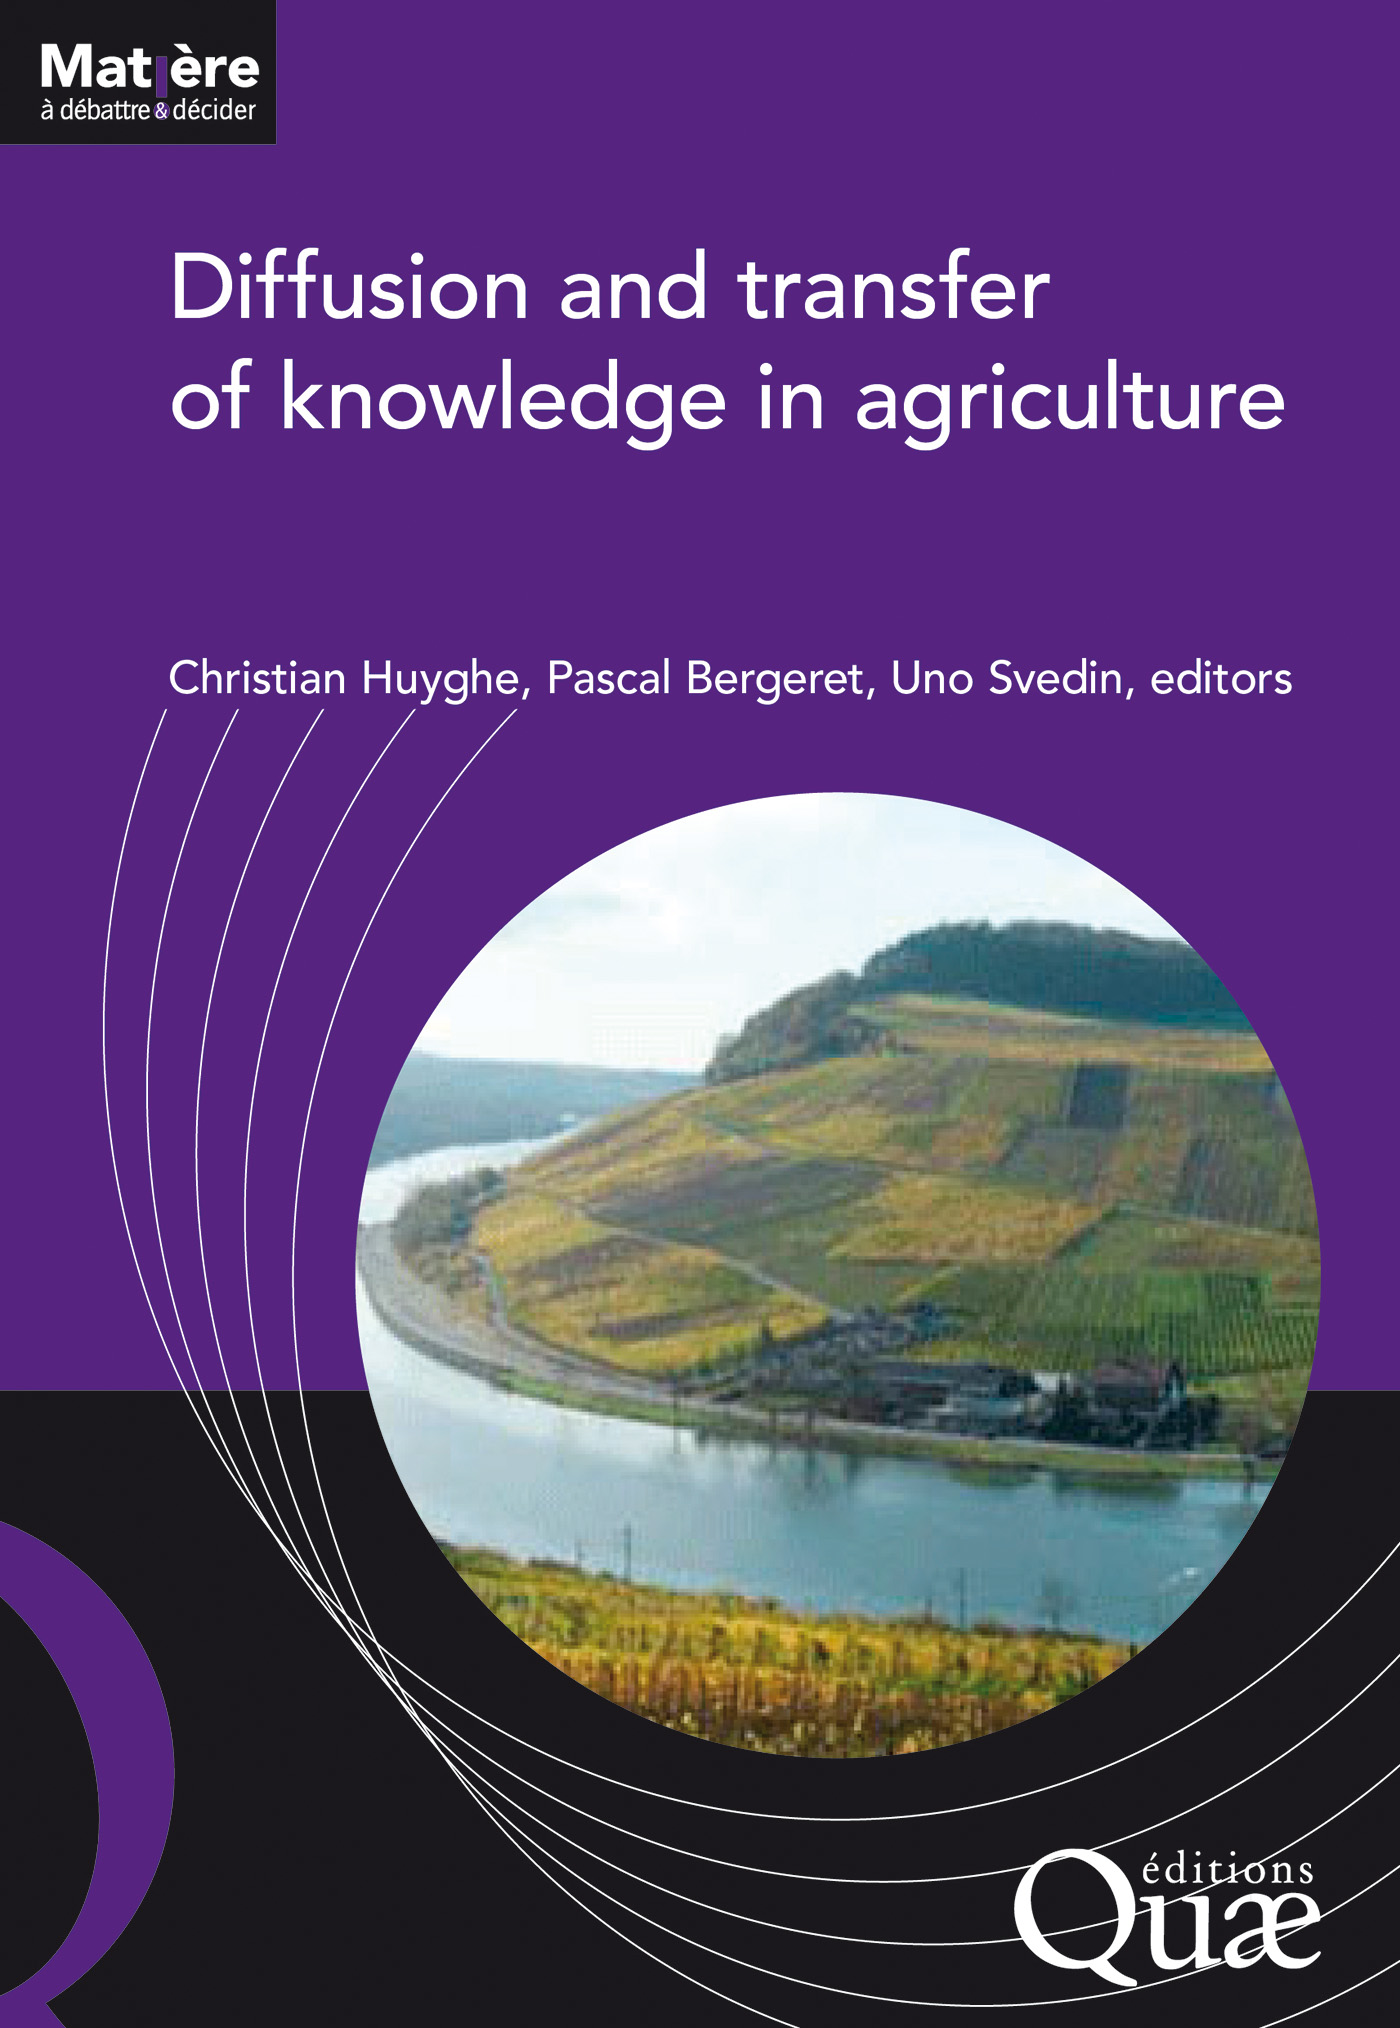 Diffusion and transfer of knowledge in agriculture De Uno Svedin, Pascal Bergeret et Christian Huyghe - Quæ